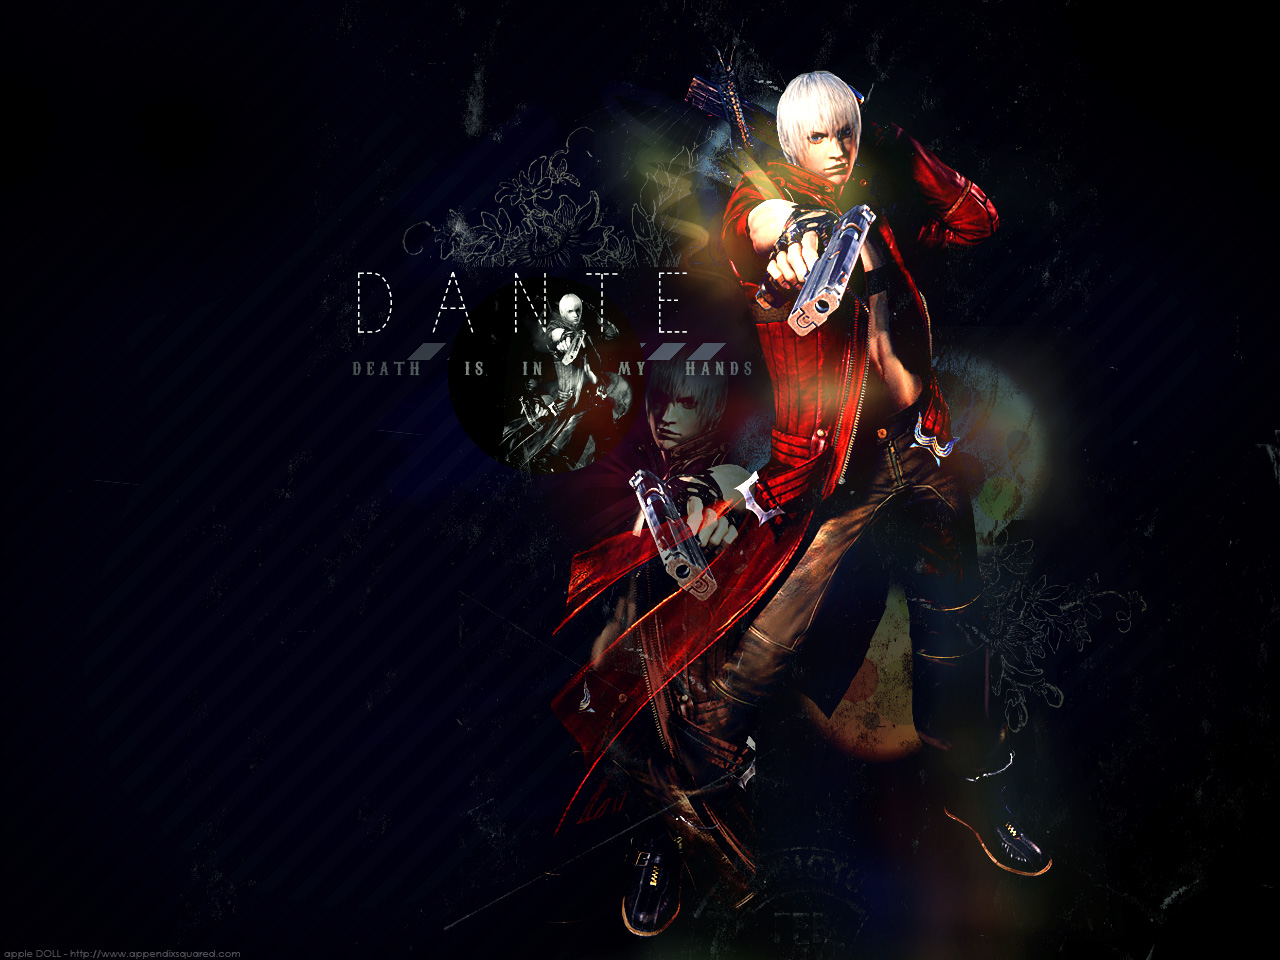 http://2.bp.blogspot.com/-43BdUExF5R4/UCpBDCpmBQI/AAAAAAAAAQg/D_HTWDTjTxs/s1600/Devil-May-Cry-Wallpapers-036.jpg